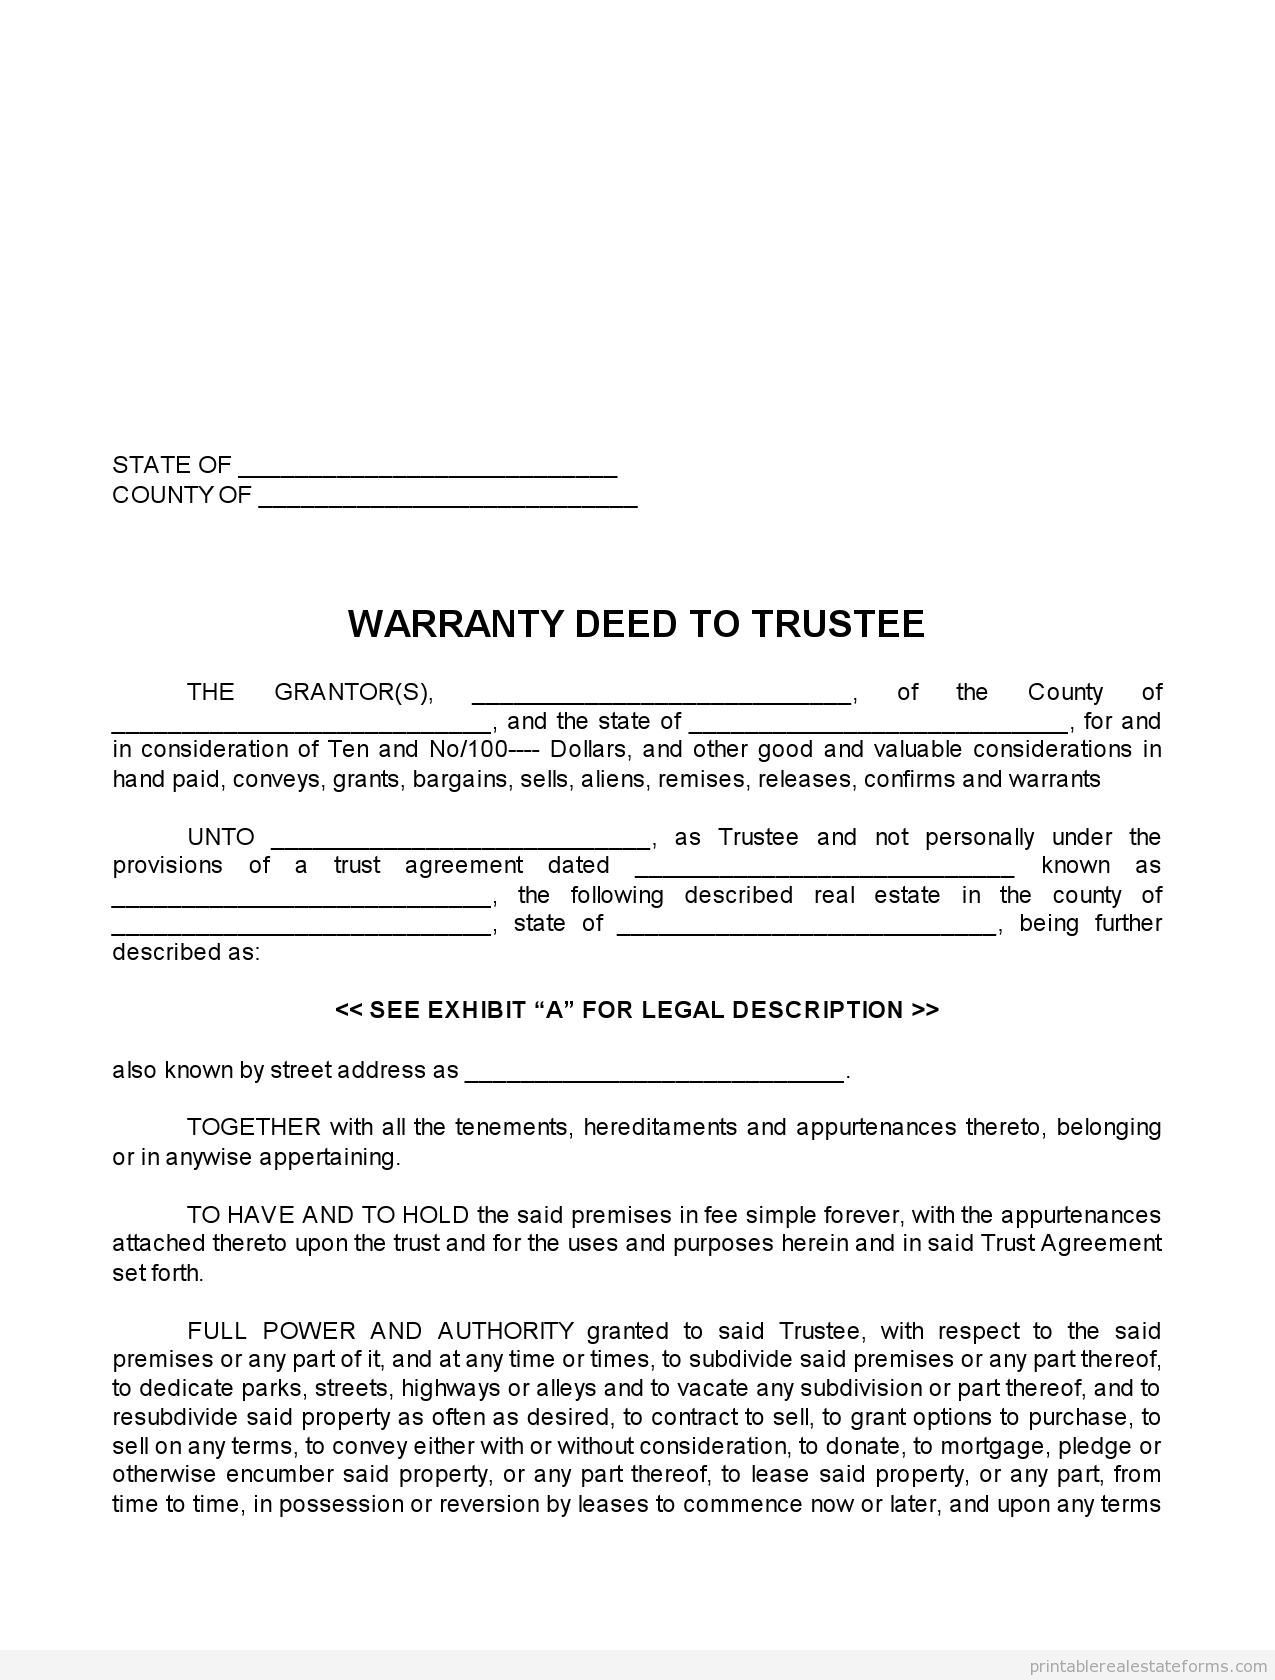 Sample Printable Warranty Deed To Trustee Form  Printable Real